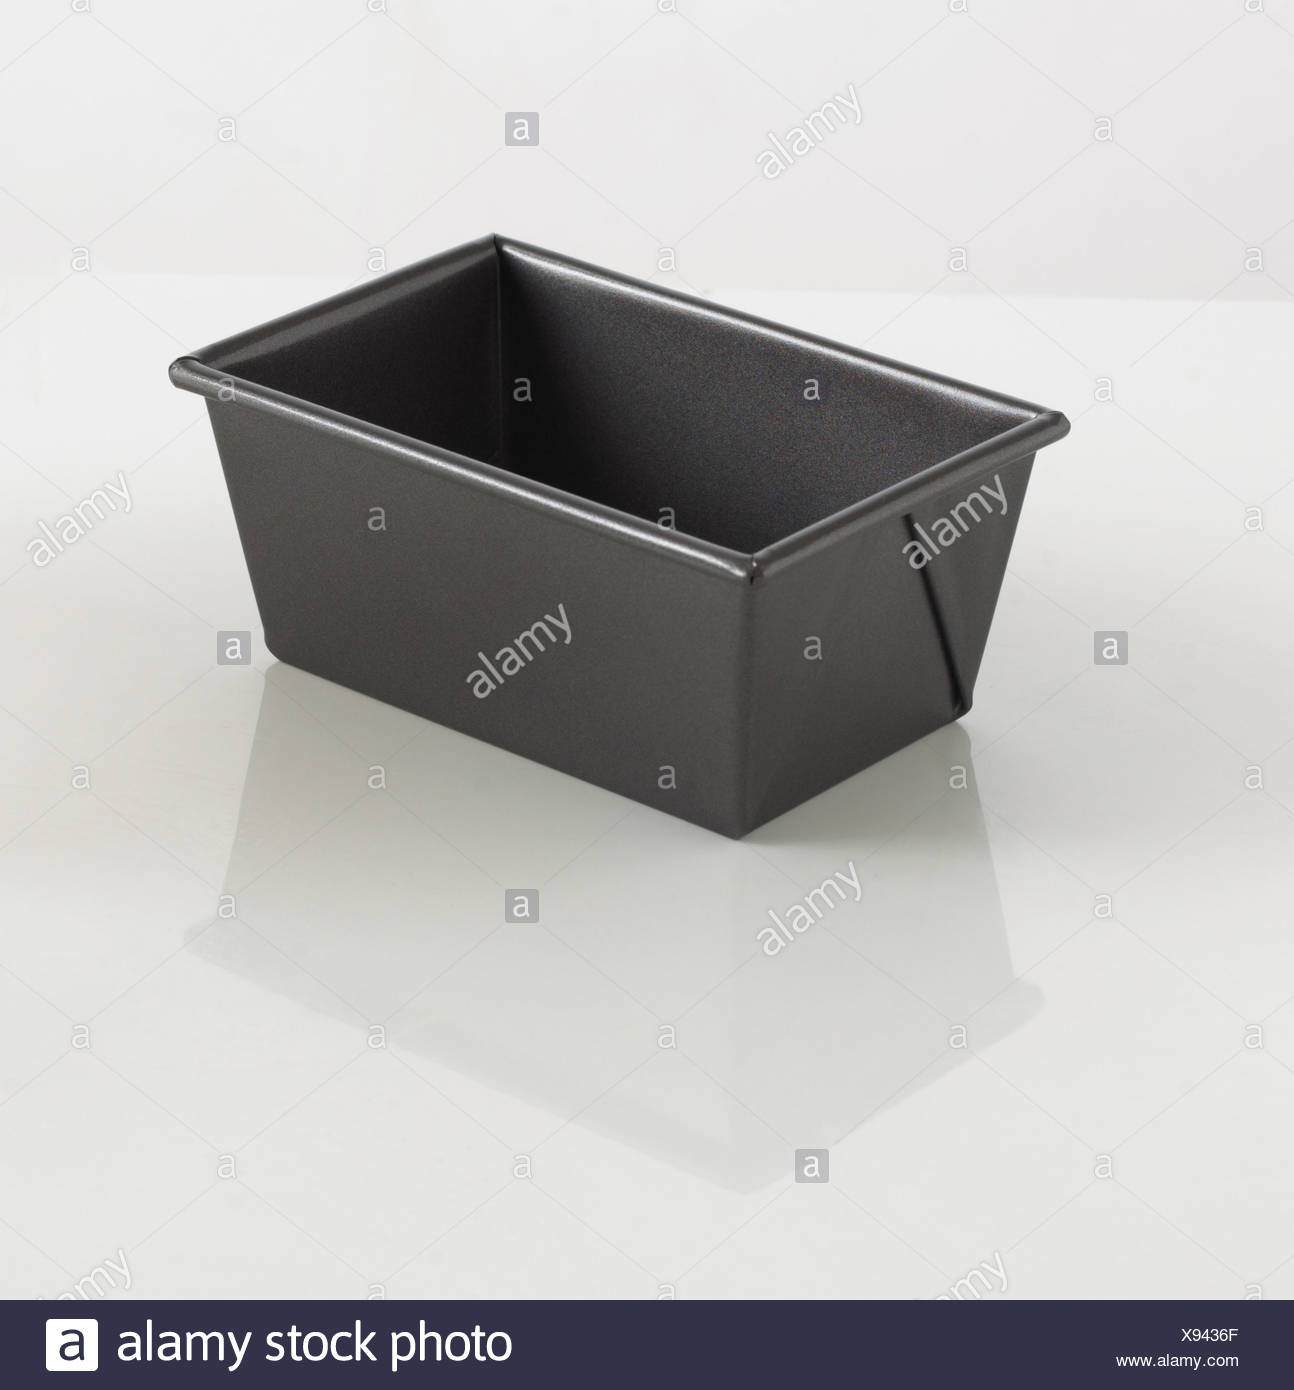 Black loaf pan on white background - Stock Image